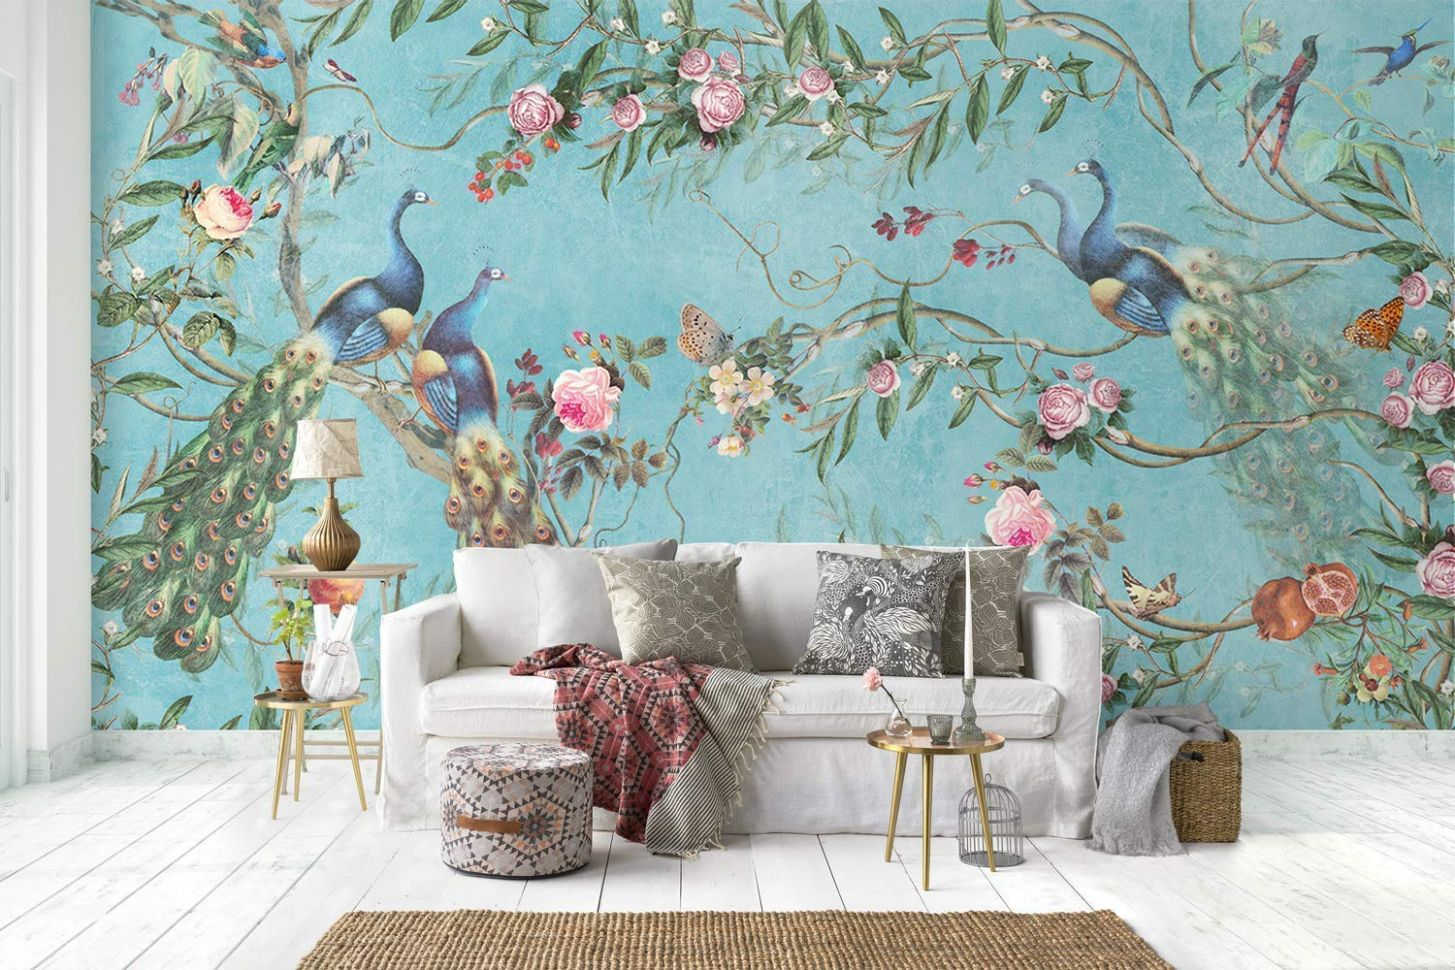 Murwall Peacock Wallpaper Peony Blossom Wall Mural Chinese Floral Wall  Print Asiatic Home Decor Cafe Design - home decor wallpaper